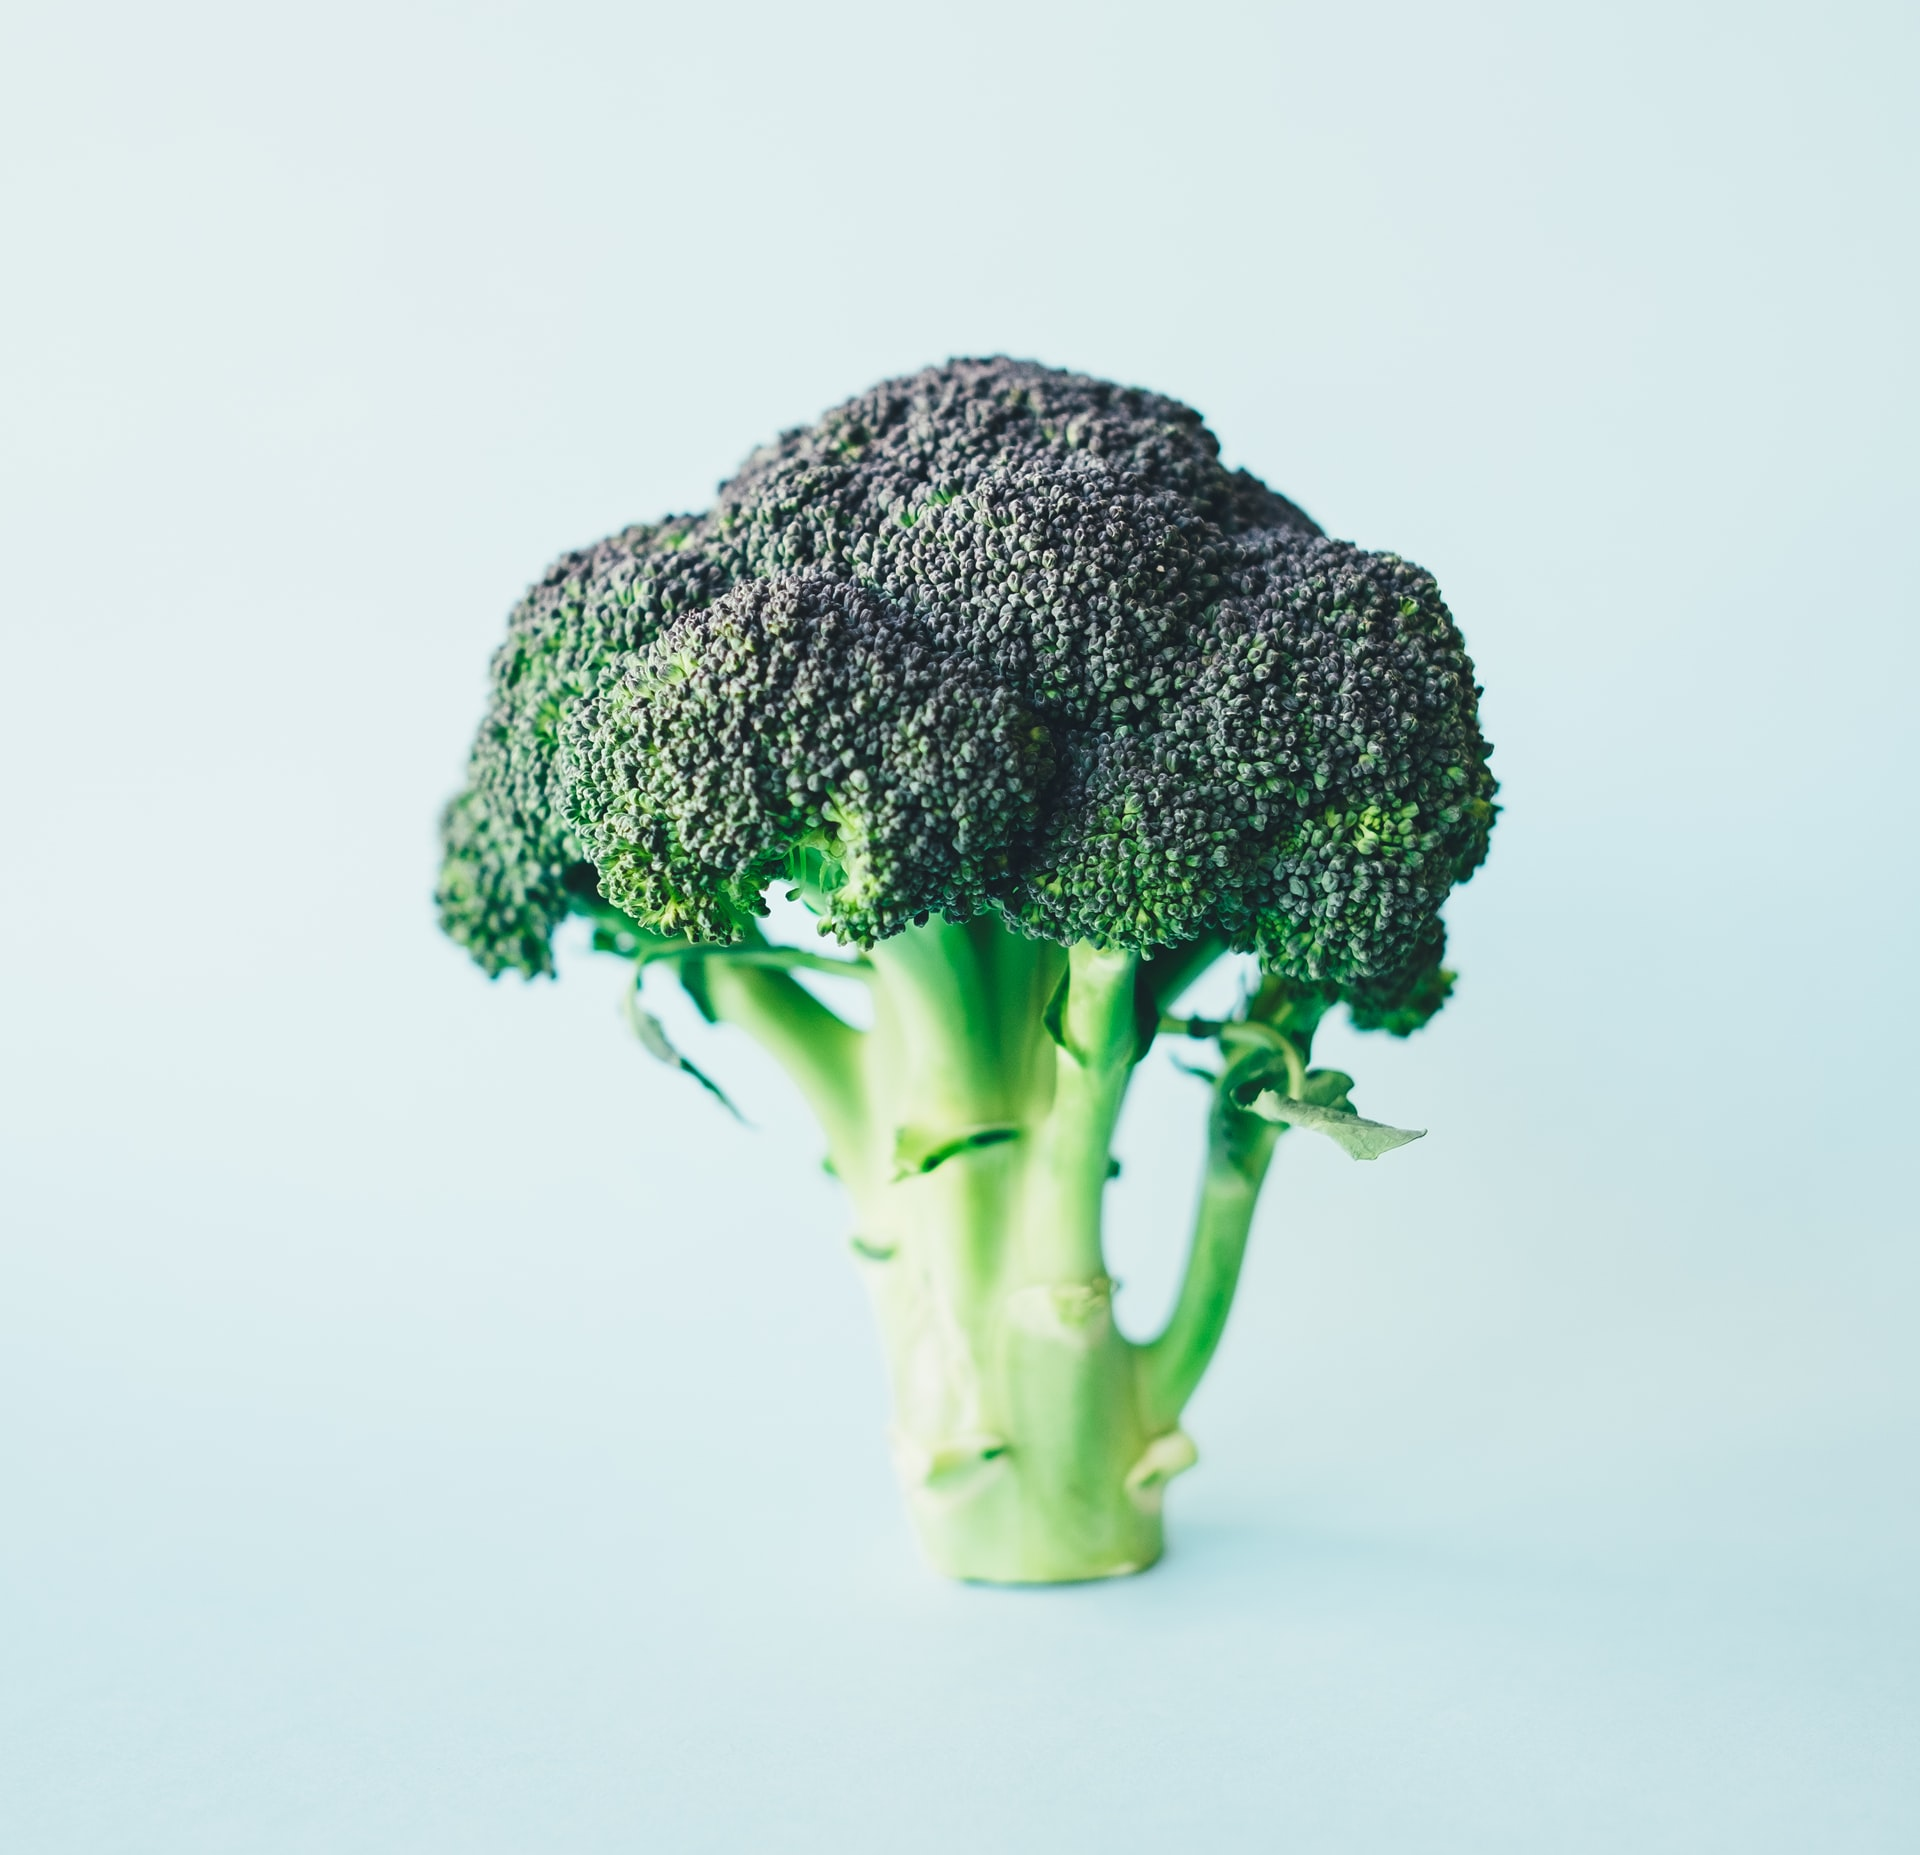 Investigating Broccoli Juice and Its' Benefits